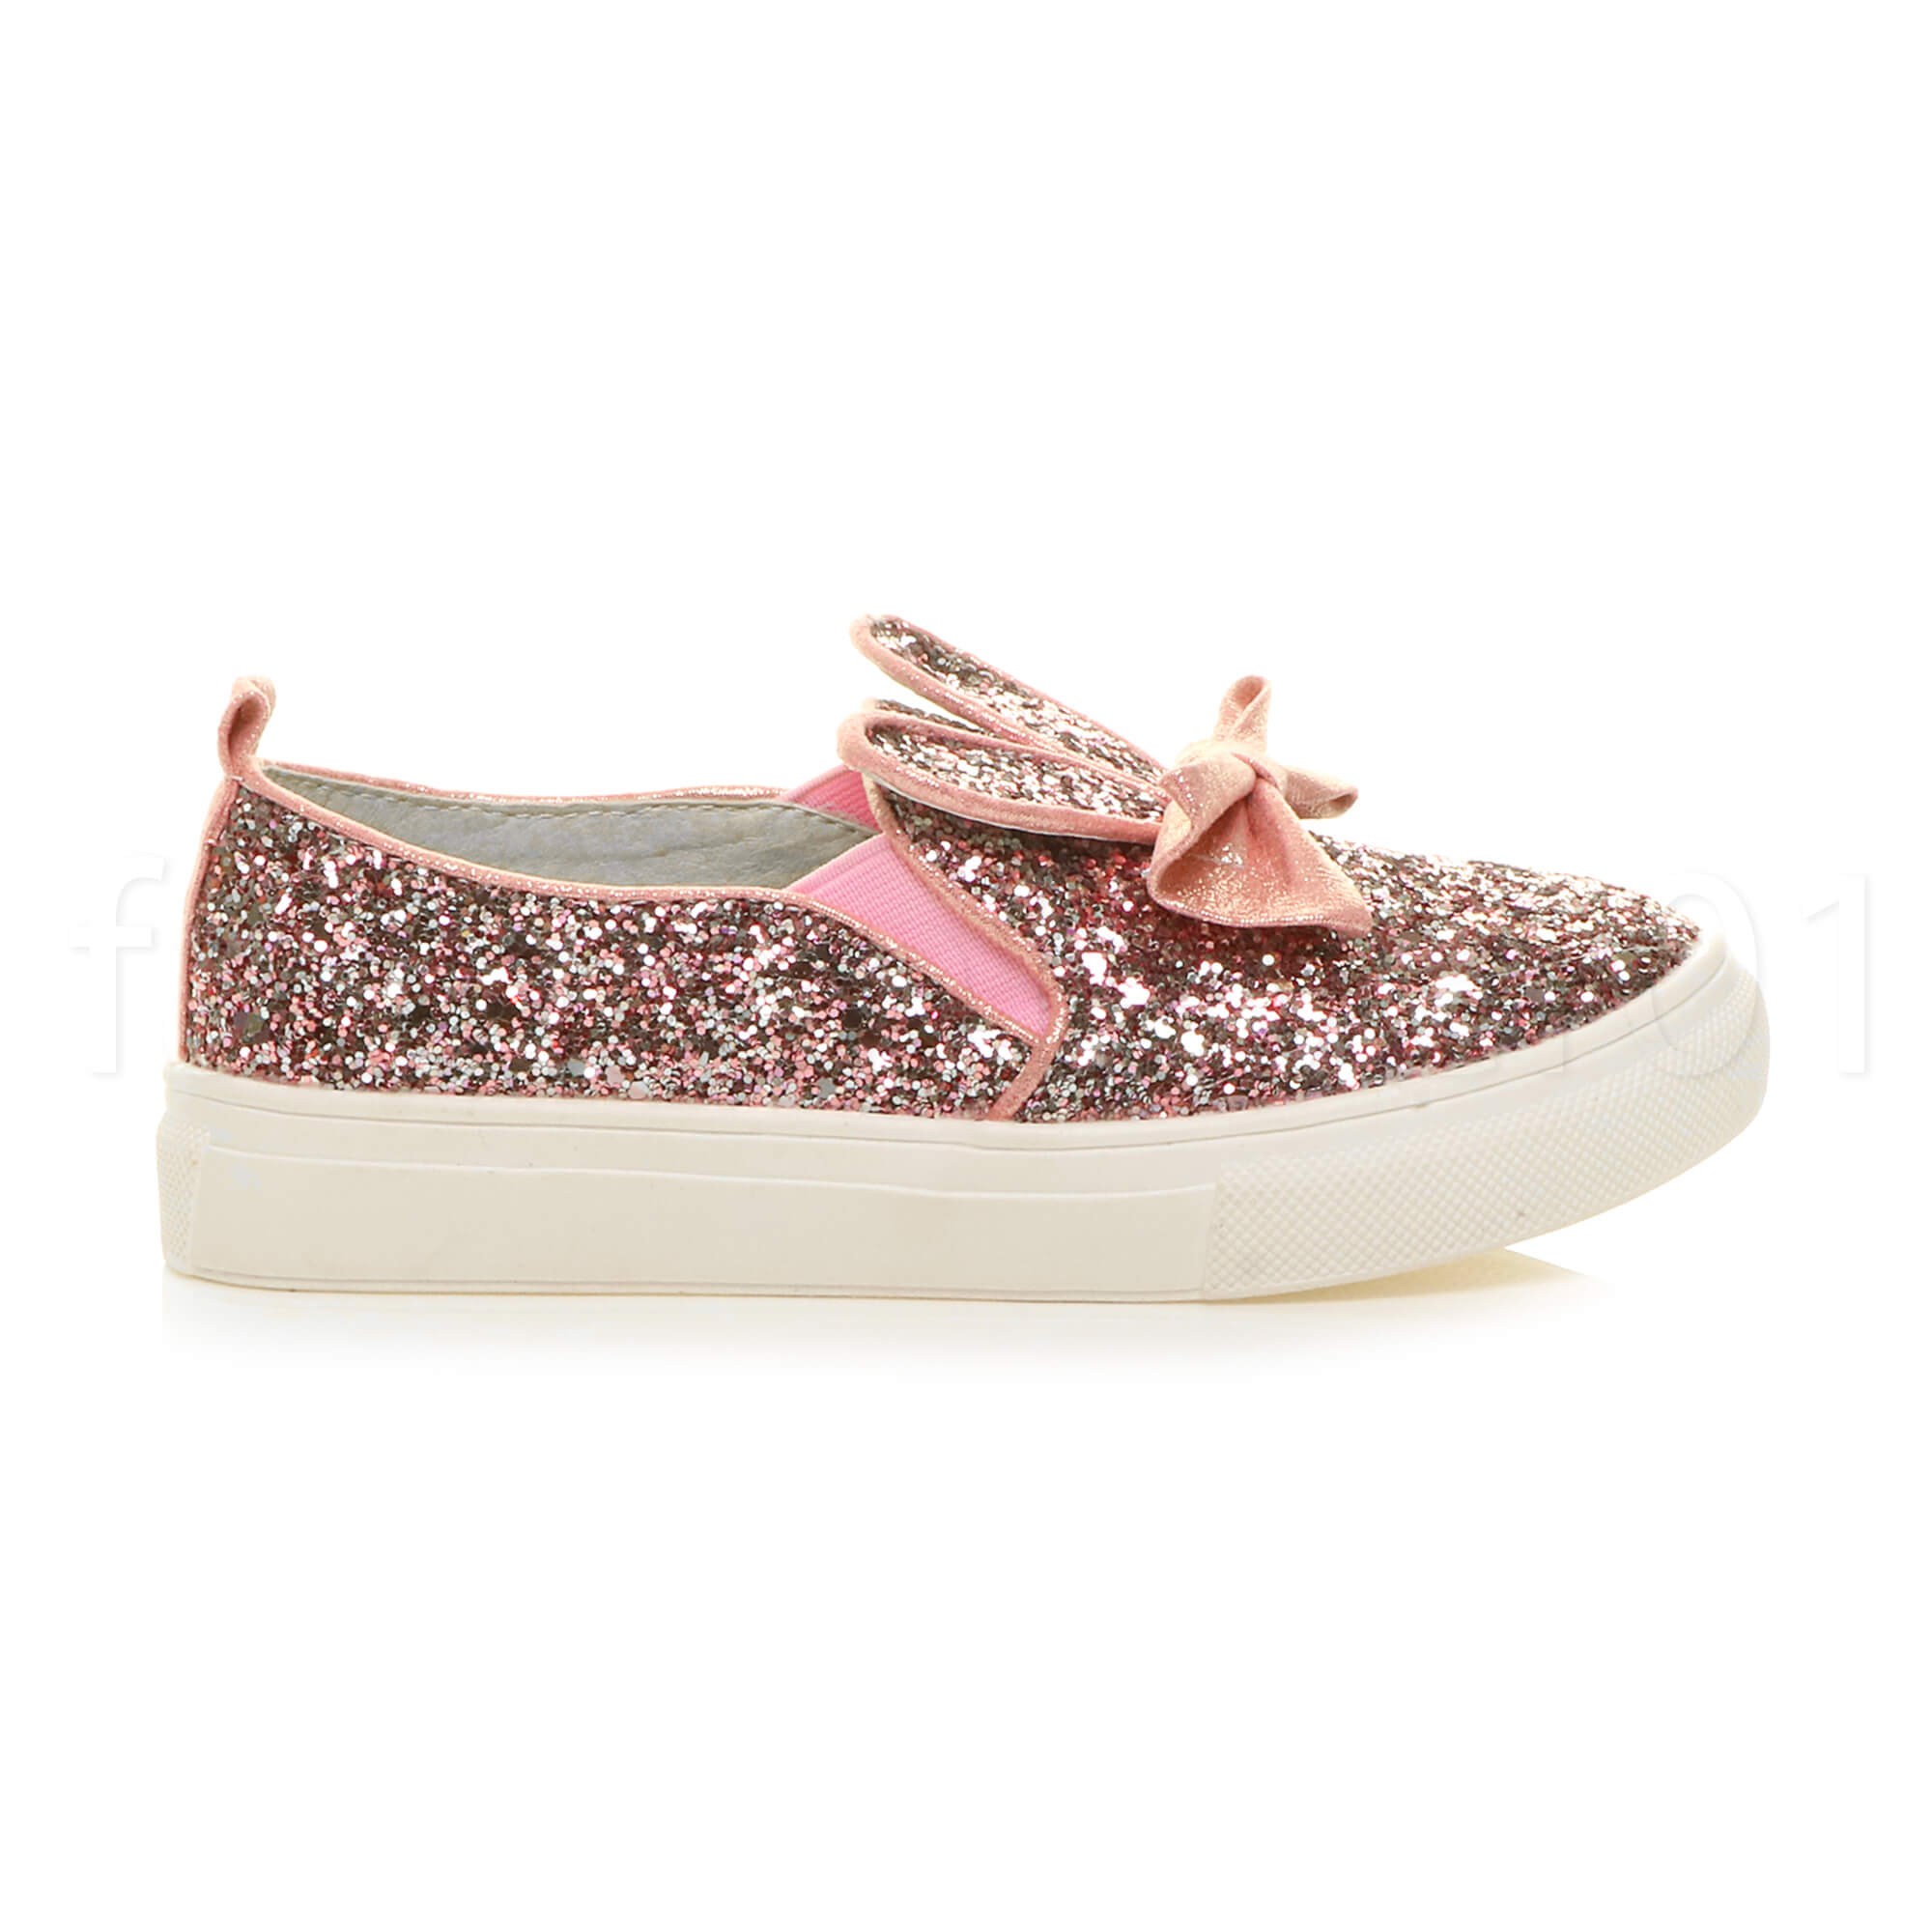 GIRLS KIDS CHILDRENS SPARKLY SEQUIN GLITTER PARTY PLIMSOLLS TRAINERS SHOES SIZE